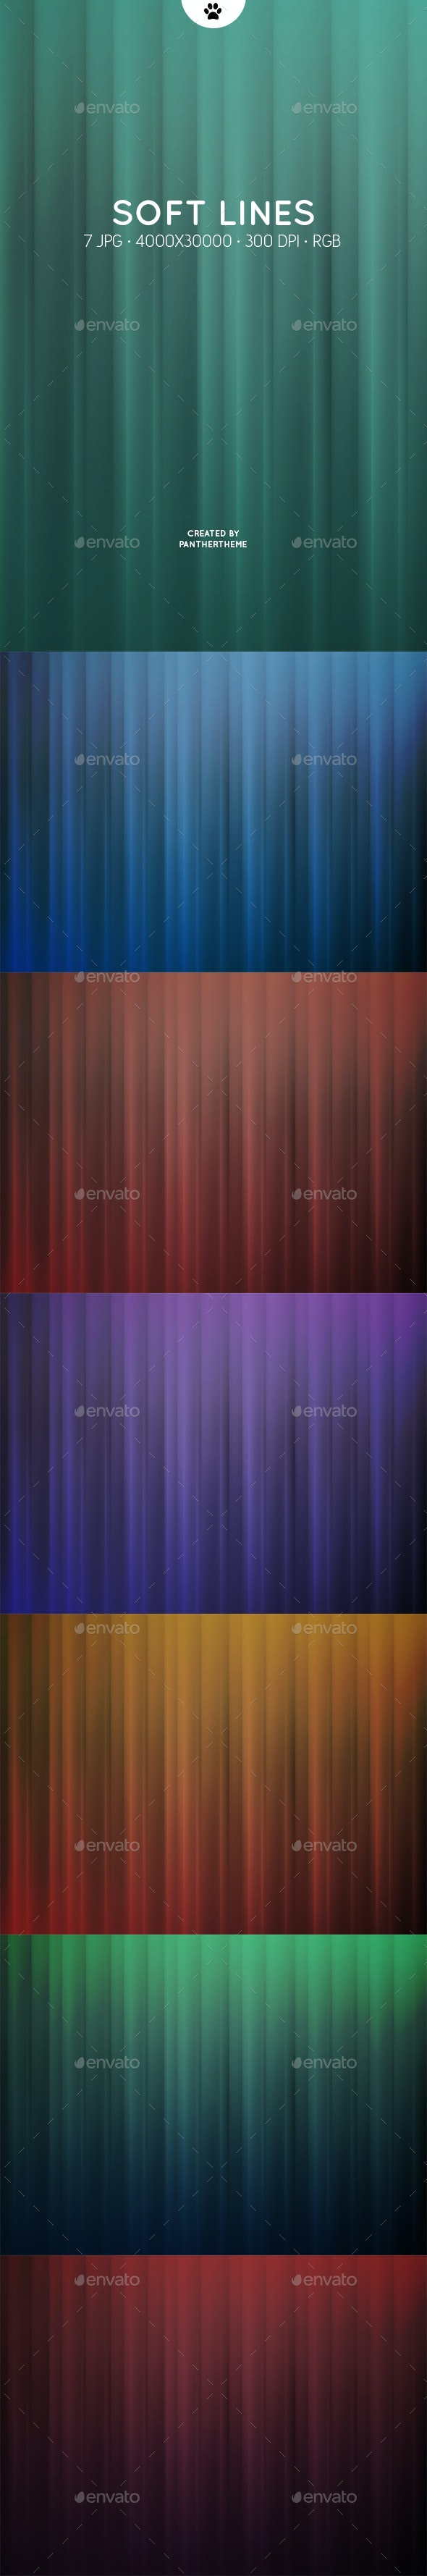 Soft Gradient Lines - Abstract Backgrounds